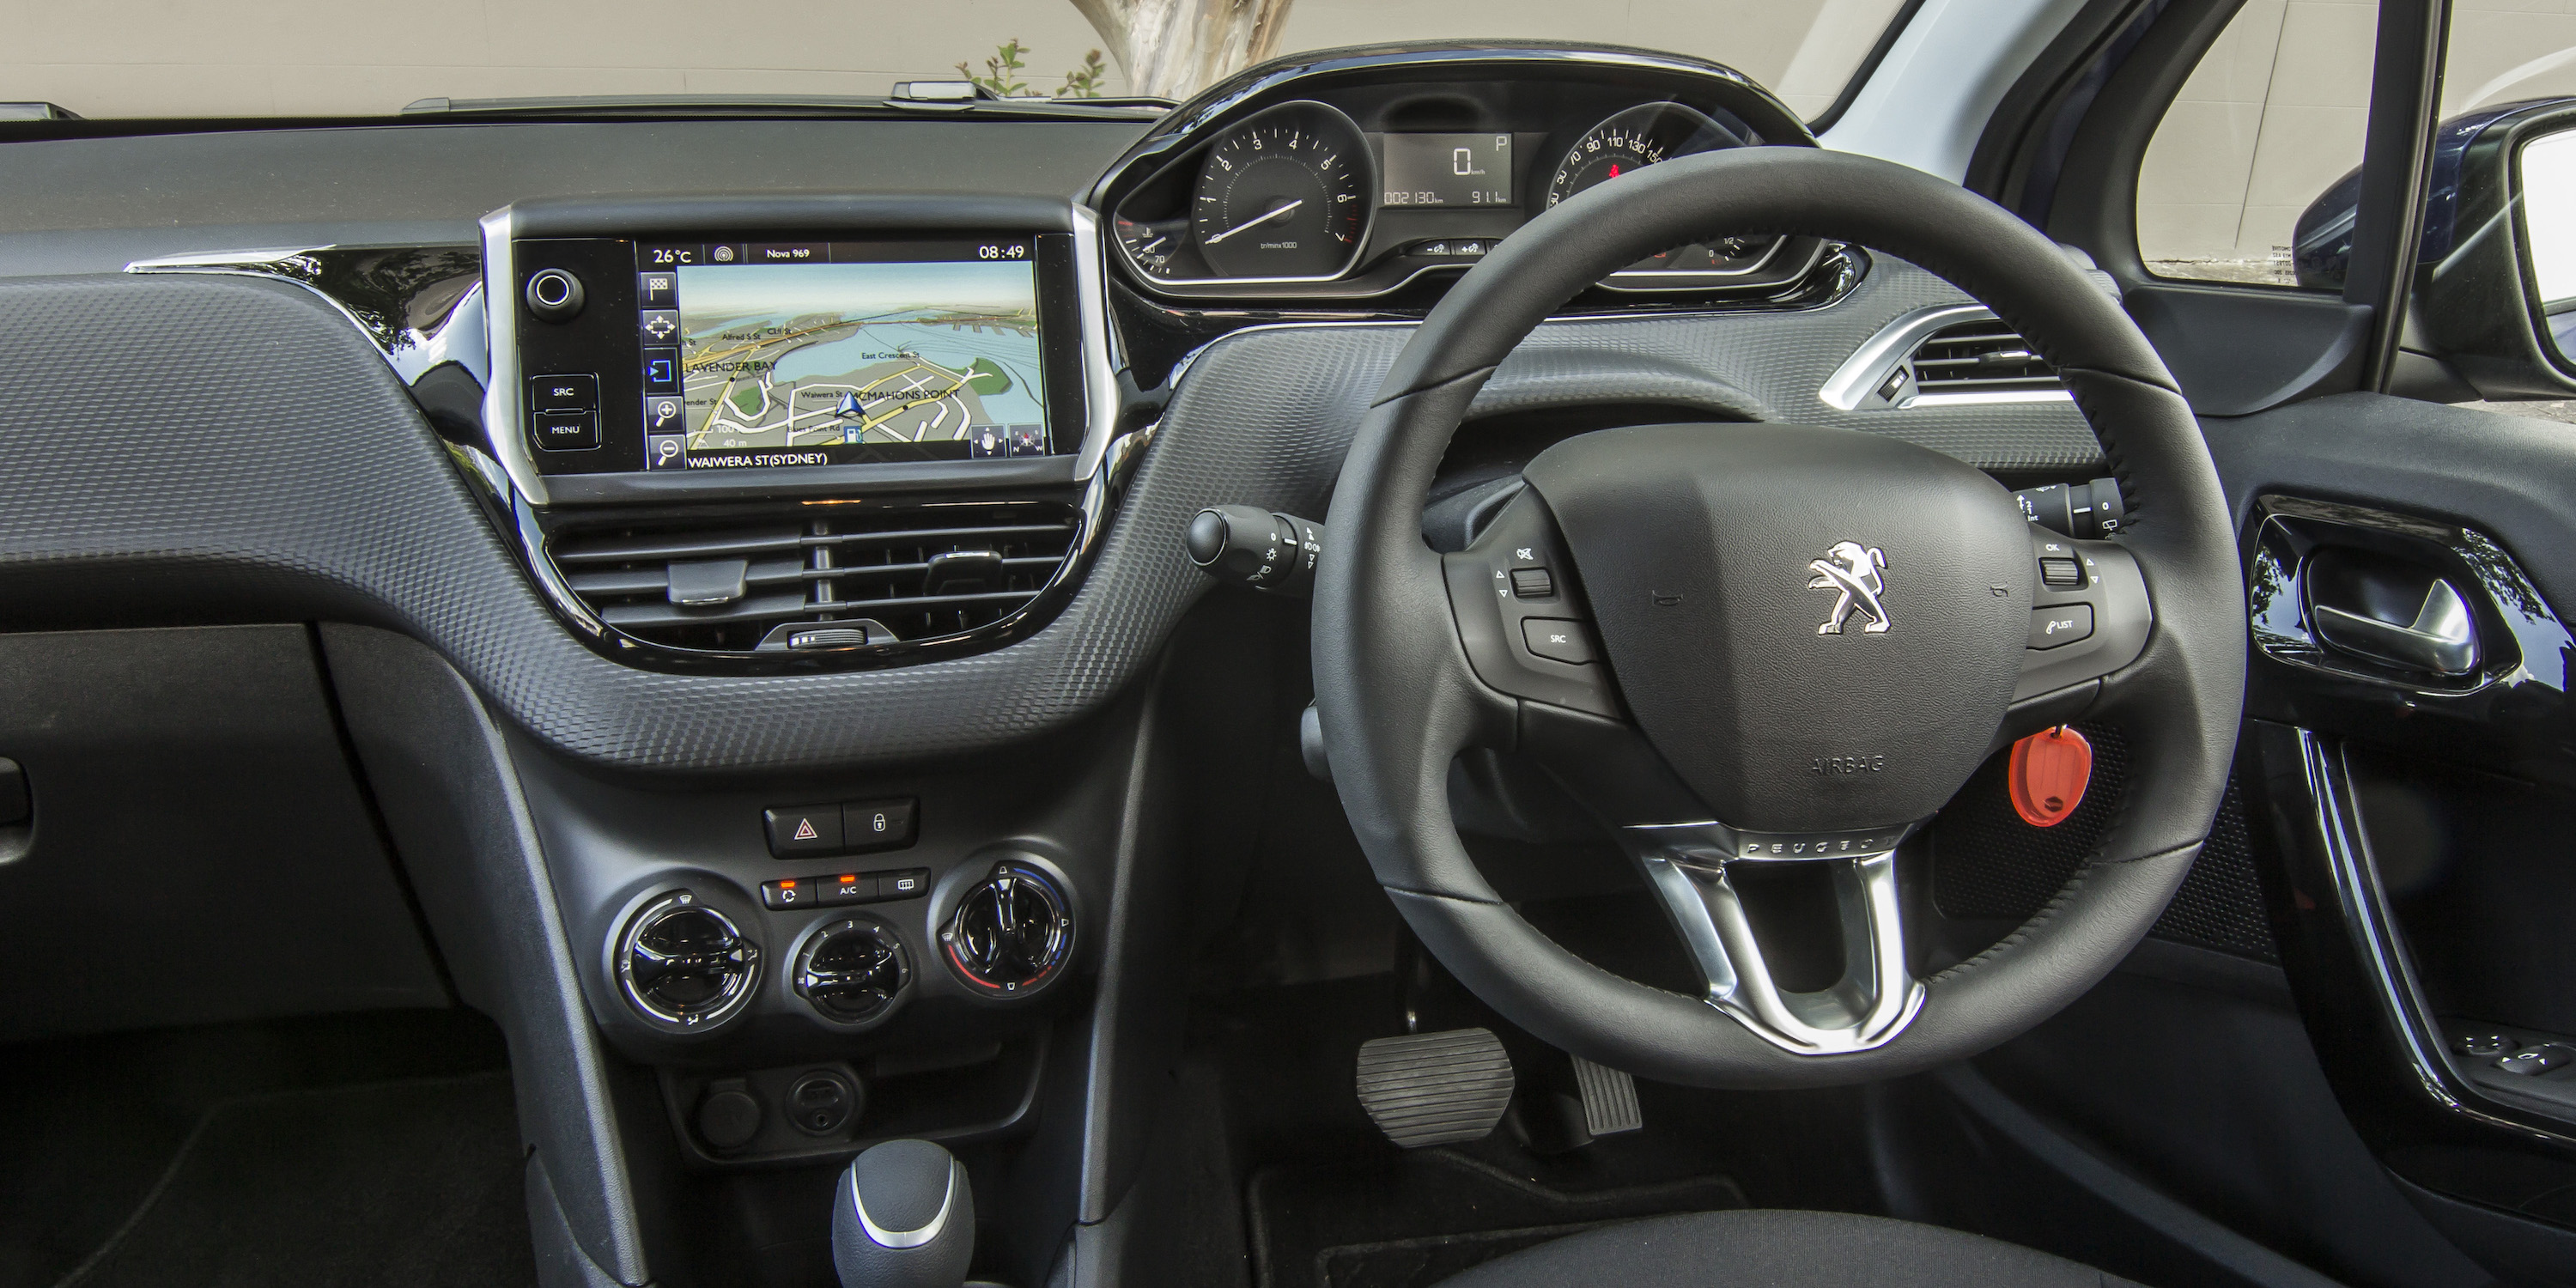 Cx 5 2018 Interior >> 2016 Peugeot 208 Active Review - photos | CarAdvice